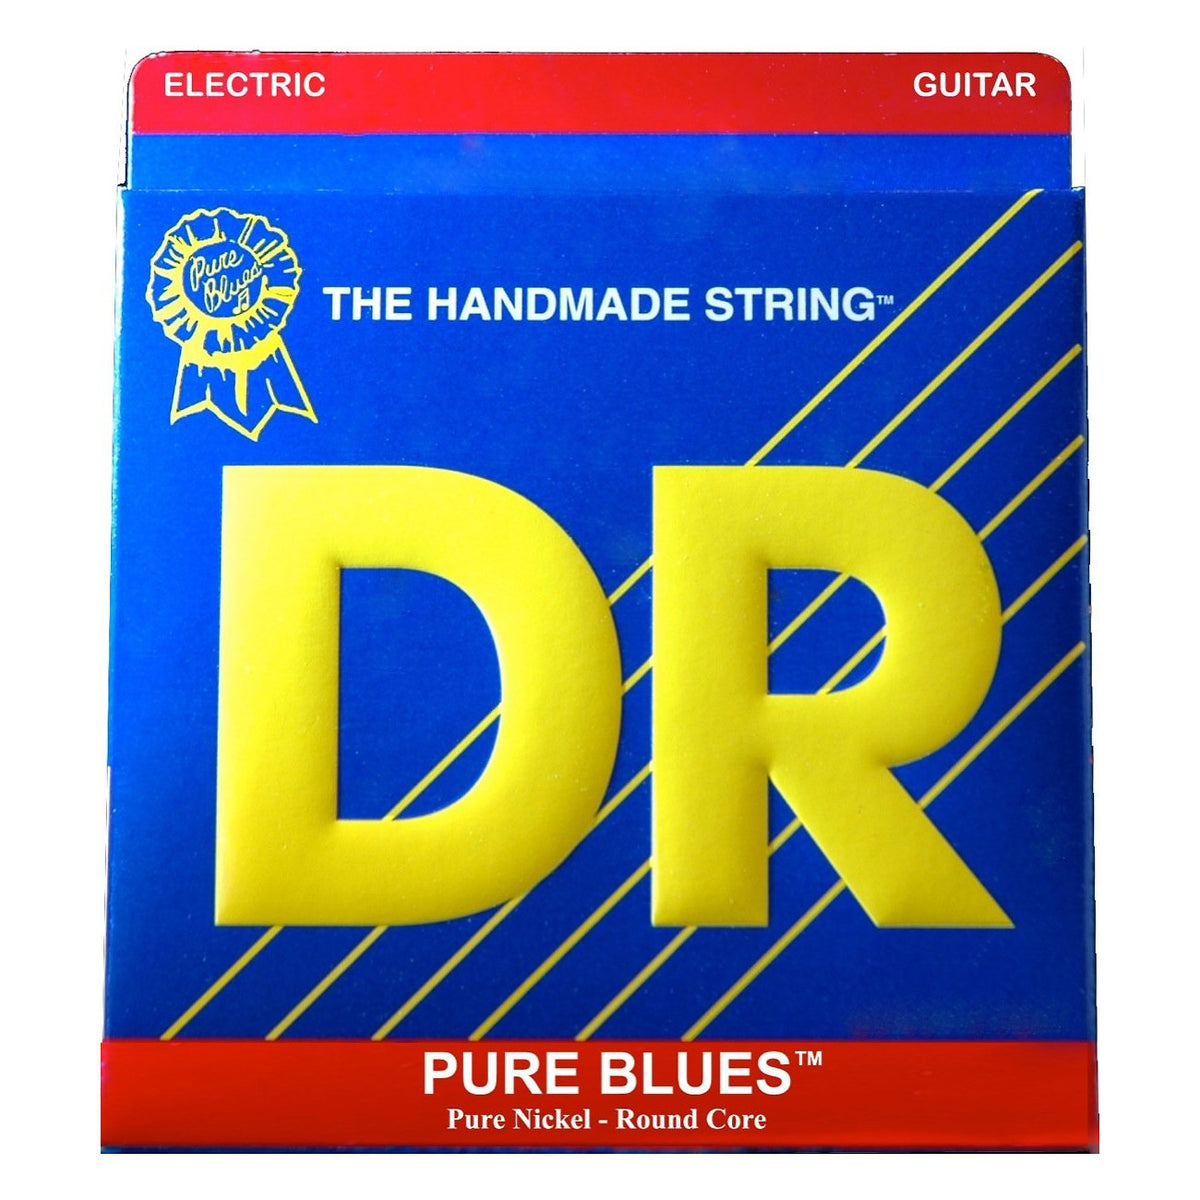 DR Strings Pure Blues Nickel Electric Guitar Strings, PHR-11, Heavy, 18568